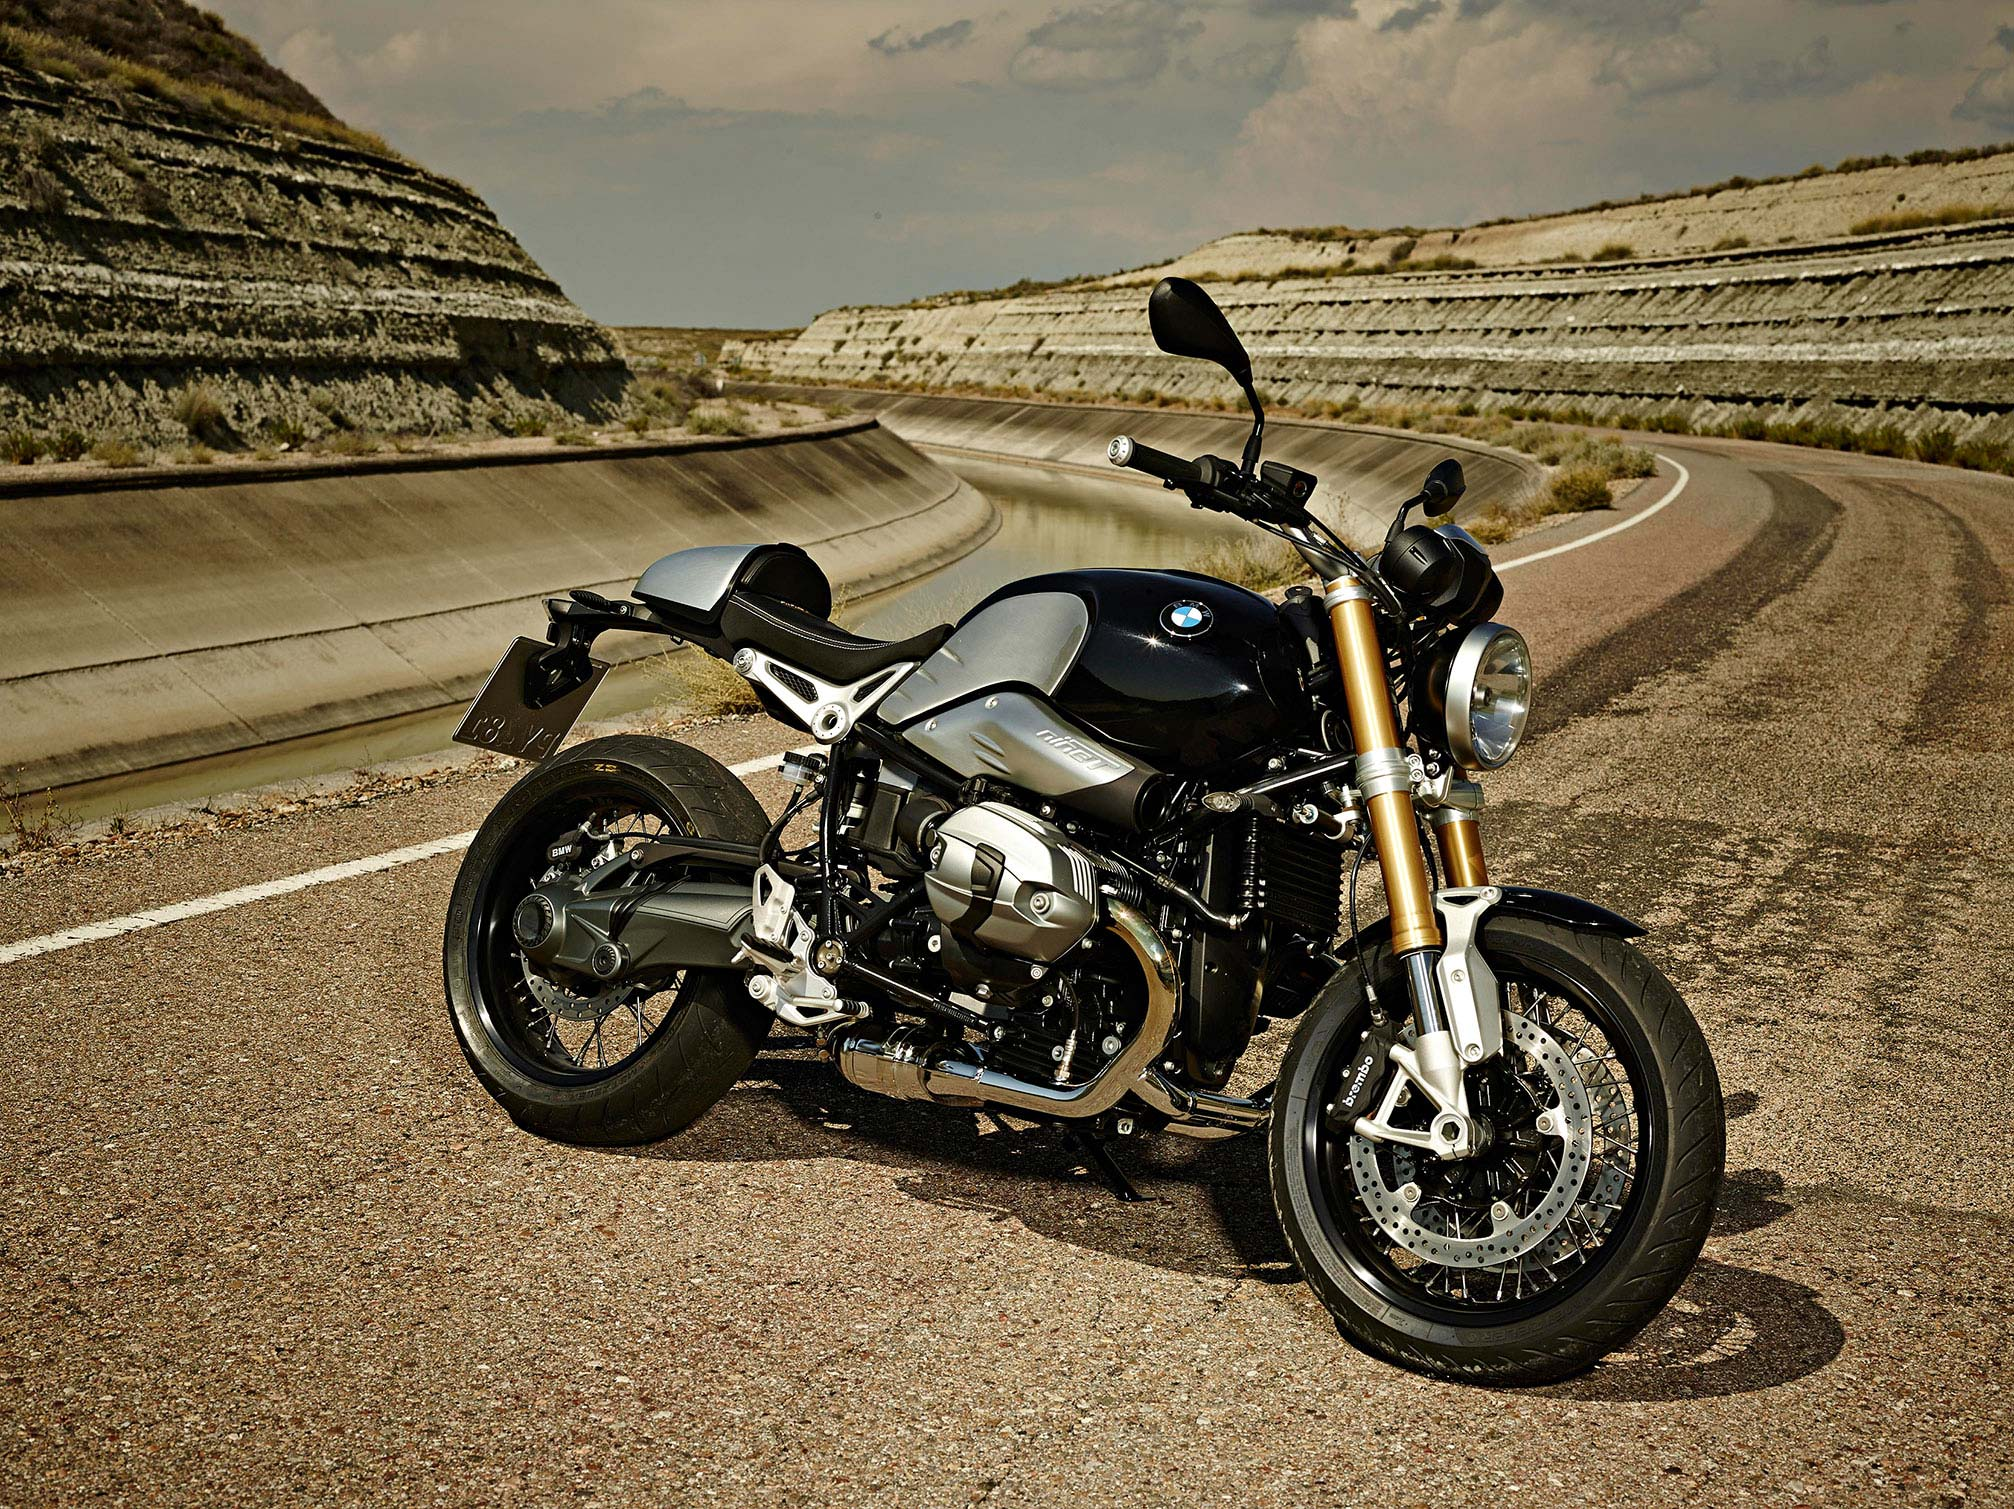 2014 BMW Motorcycle Models at Total Motorcycle